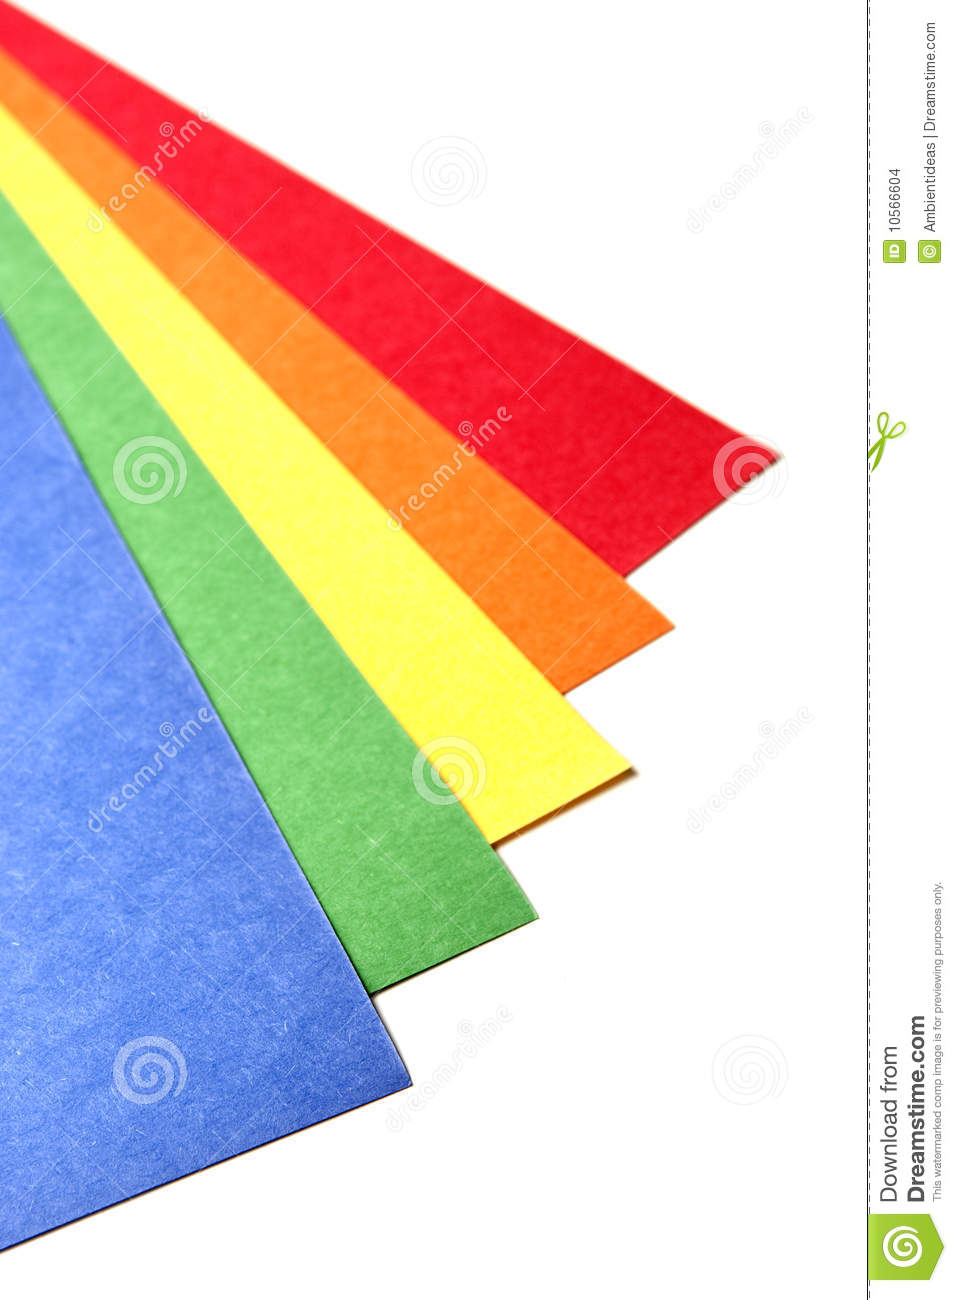 Bright Color Craft Paper Stock Photo Image Of Handmade 10566604